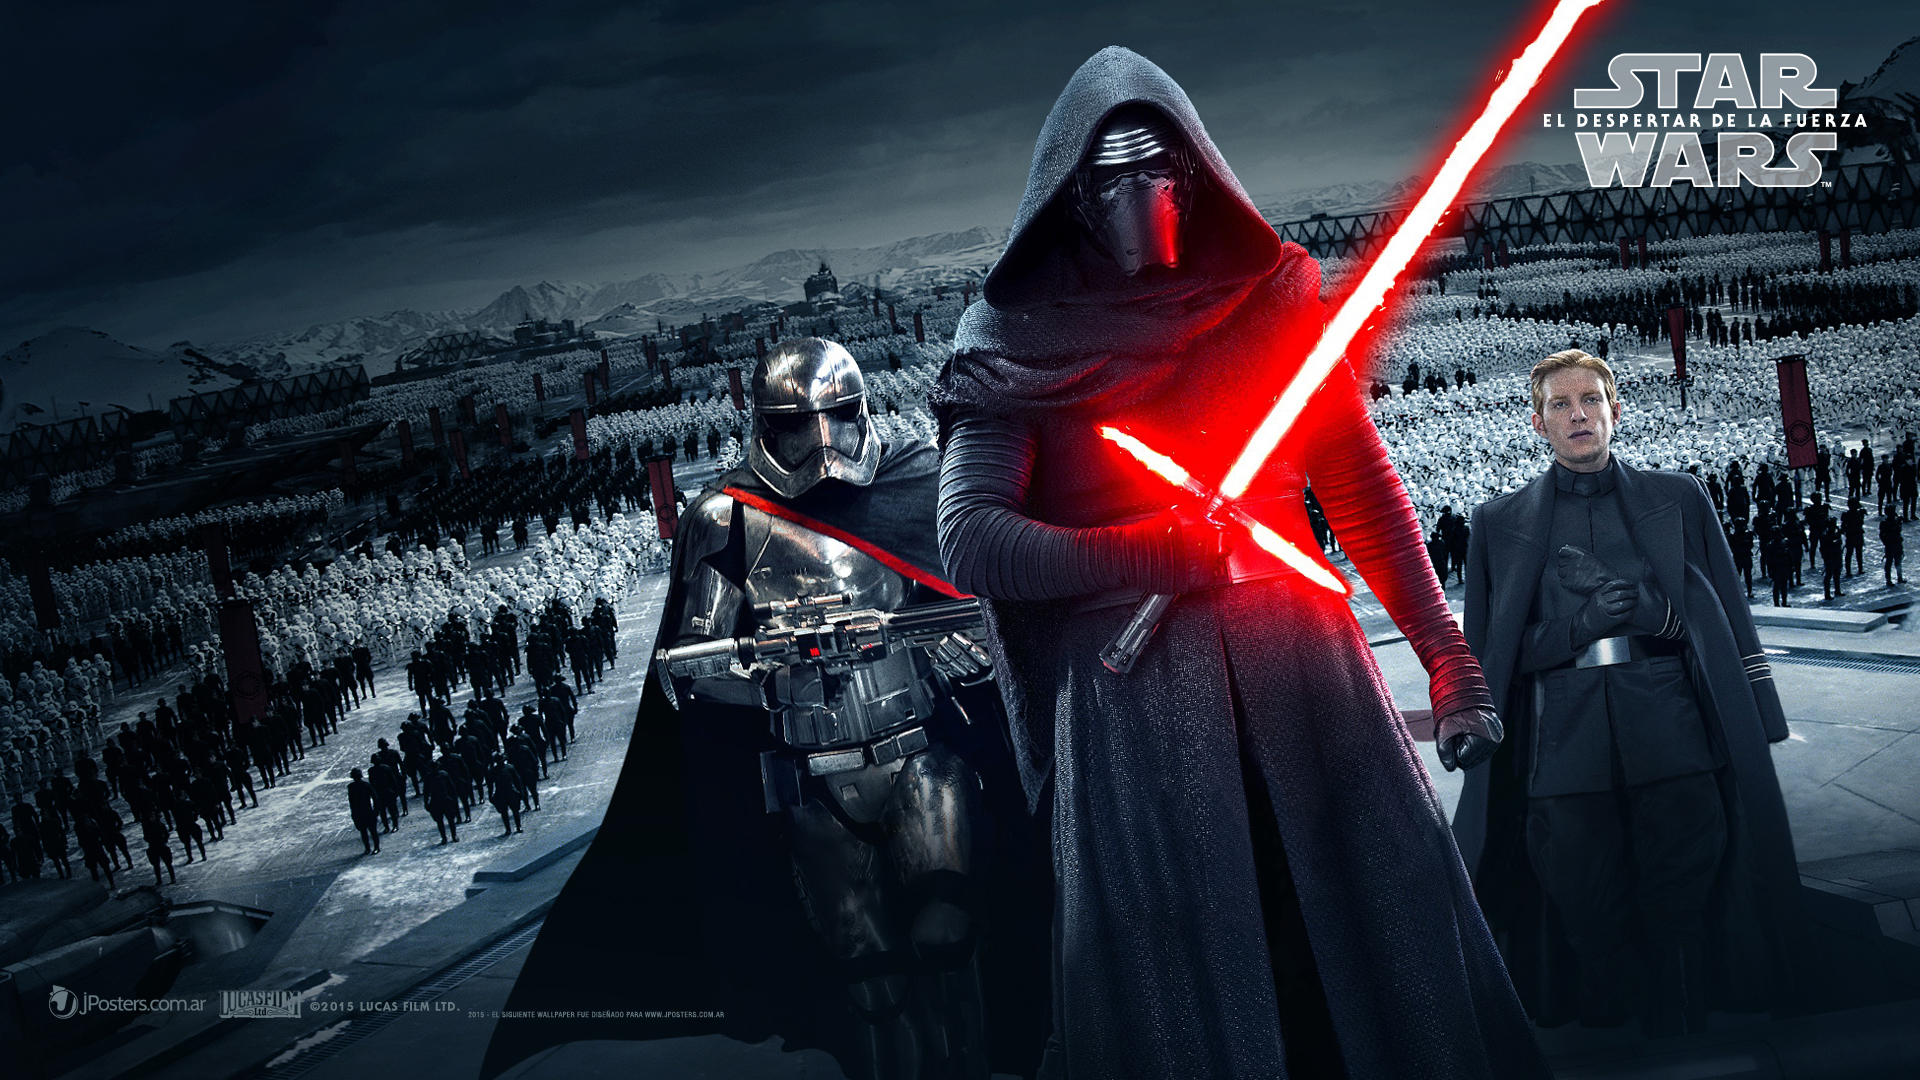 [SPOILER ALERT] Chinese Star Wars trailer has loads of new footage